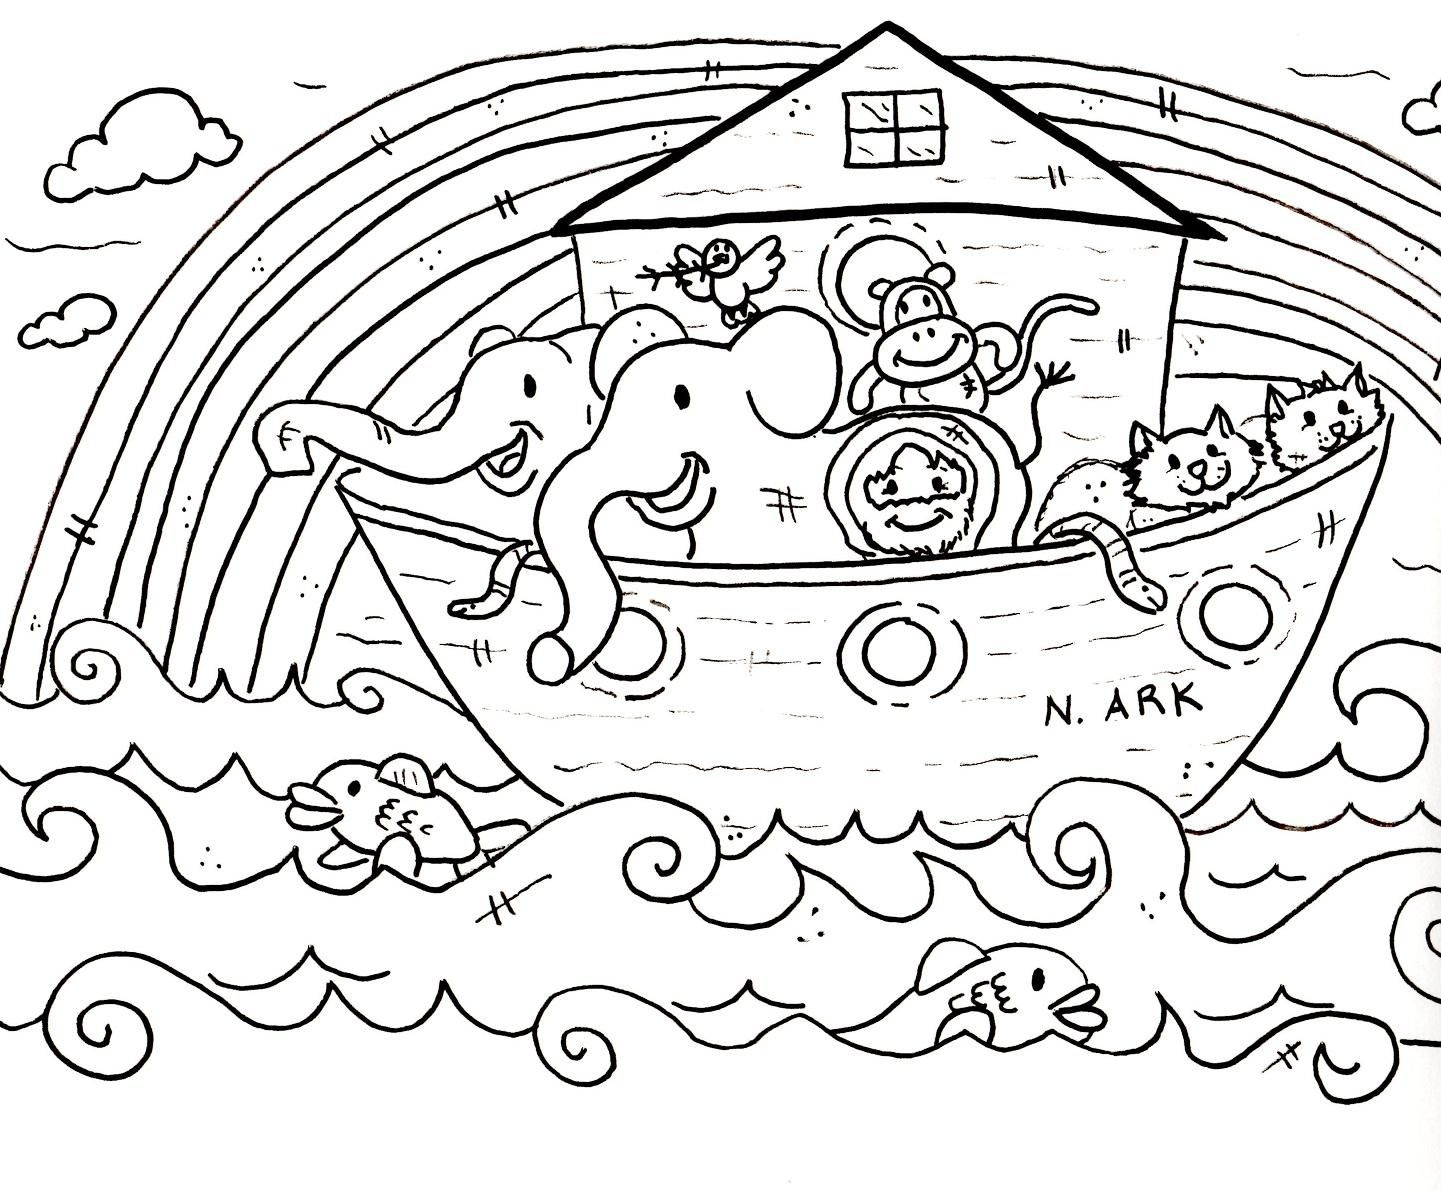 Coloring: Excelent Sunday School Coloring Pages. - Free Printable Sunday School Coloring Pages